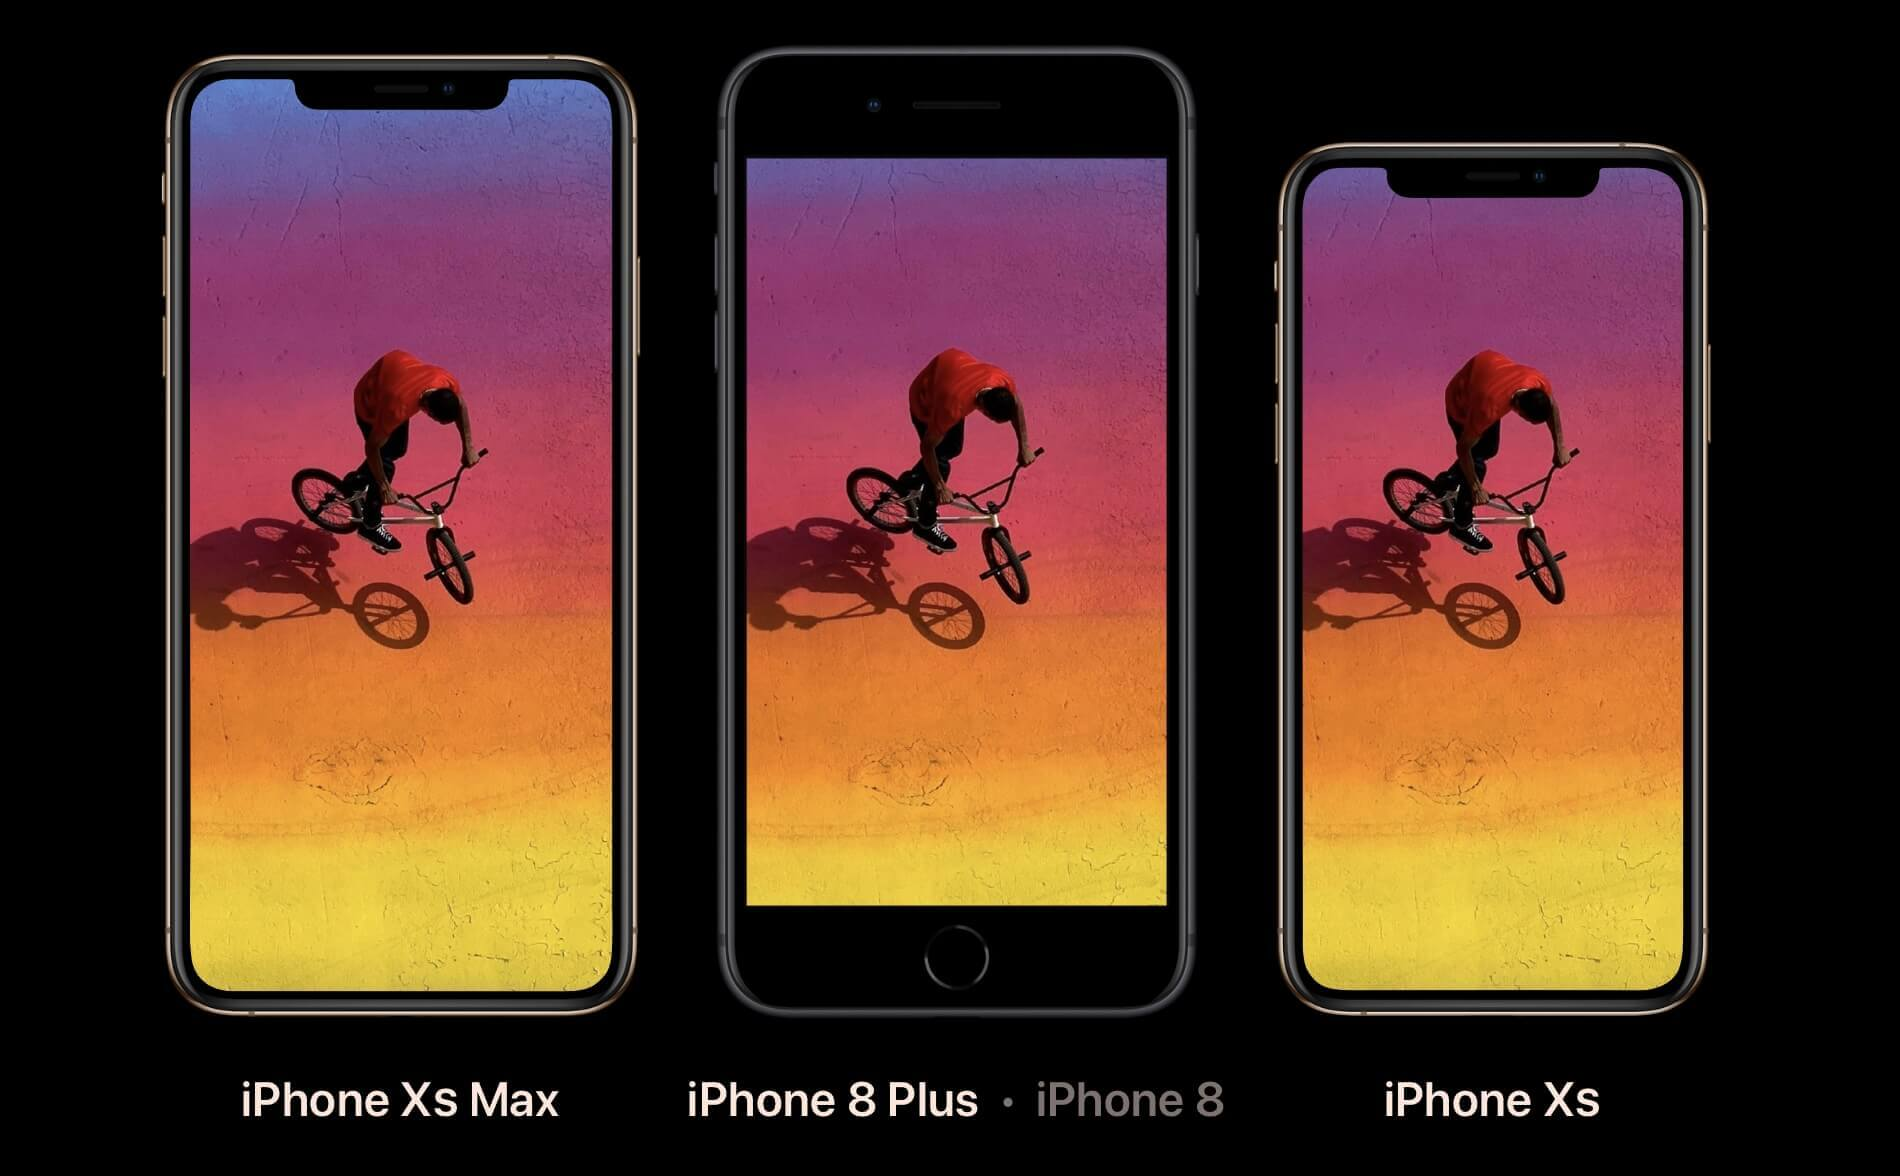 iPhone Xs and iPhone Xs Max Compare